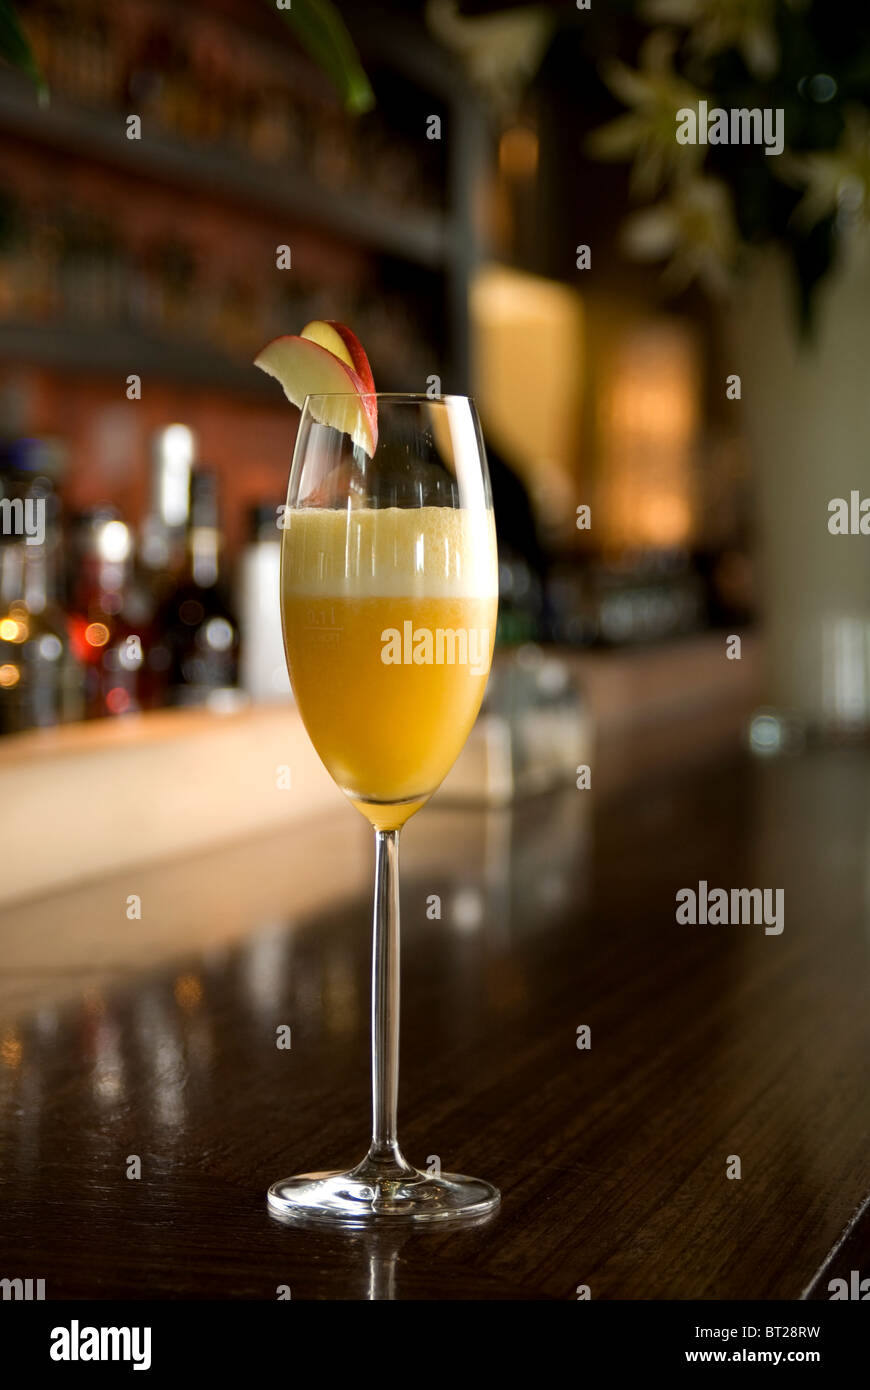 Bellini Champagne Cocktail with apple slice in bar setting. - Stock Image